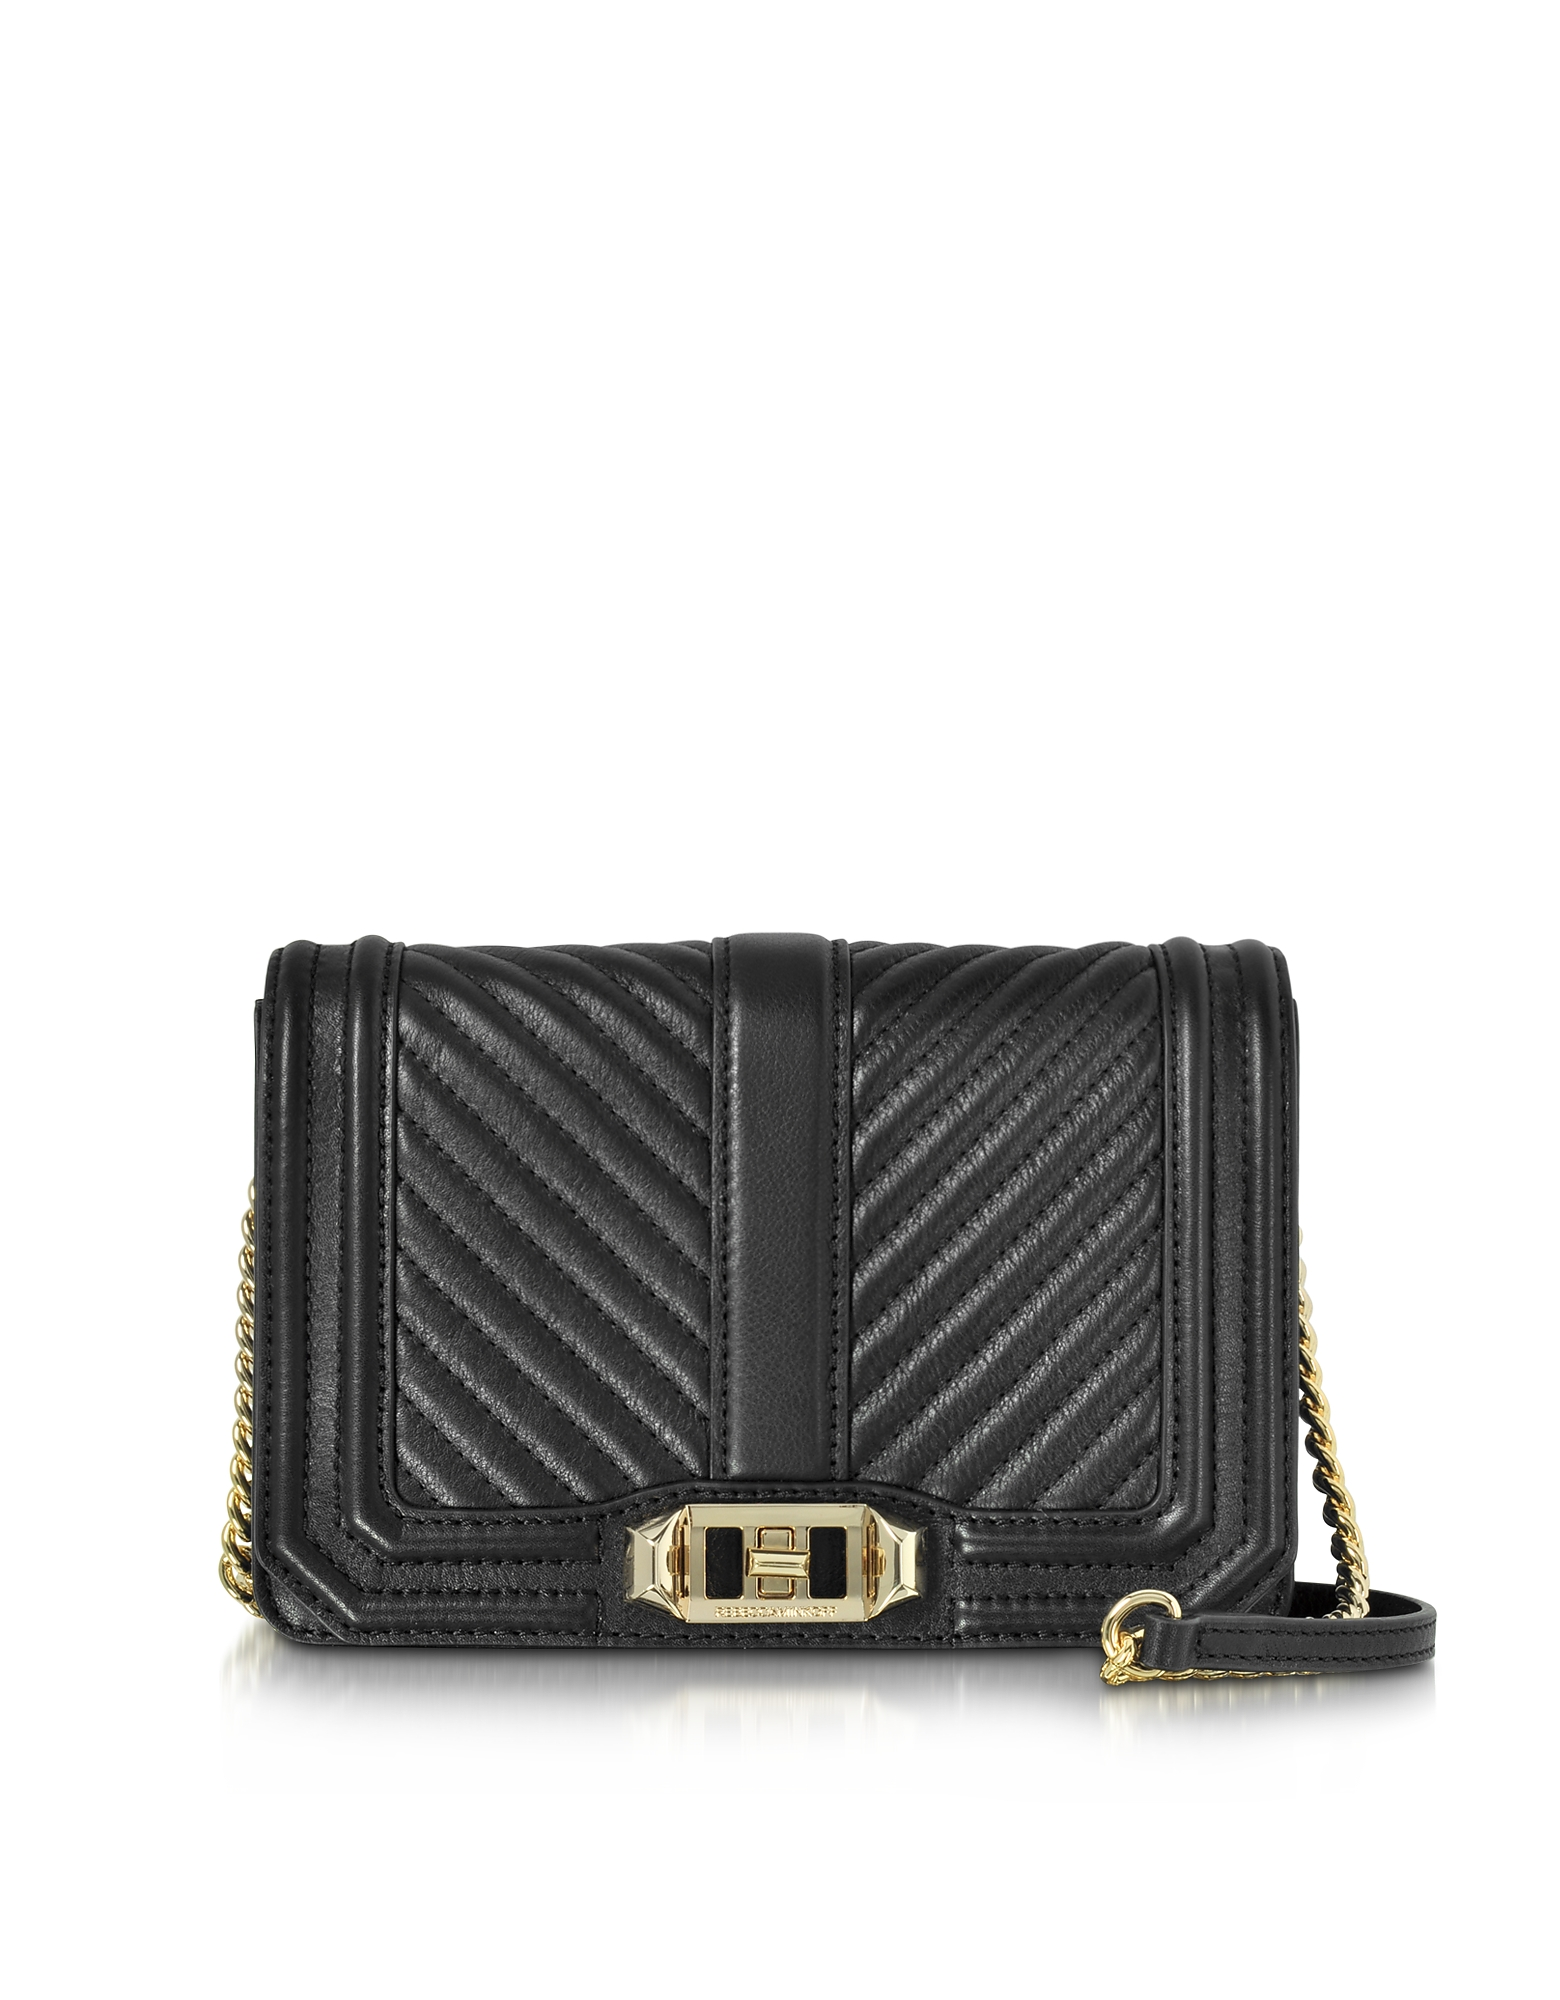 Rebecca Minkoff Handbags, Black Quilted Leather Small Love Crossbody Bag